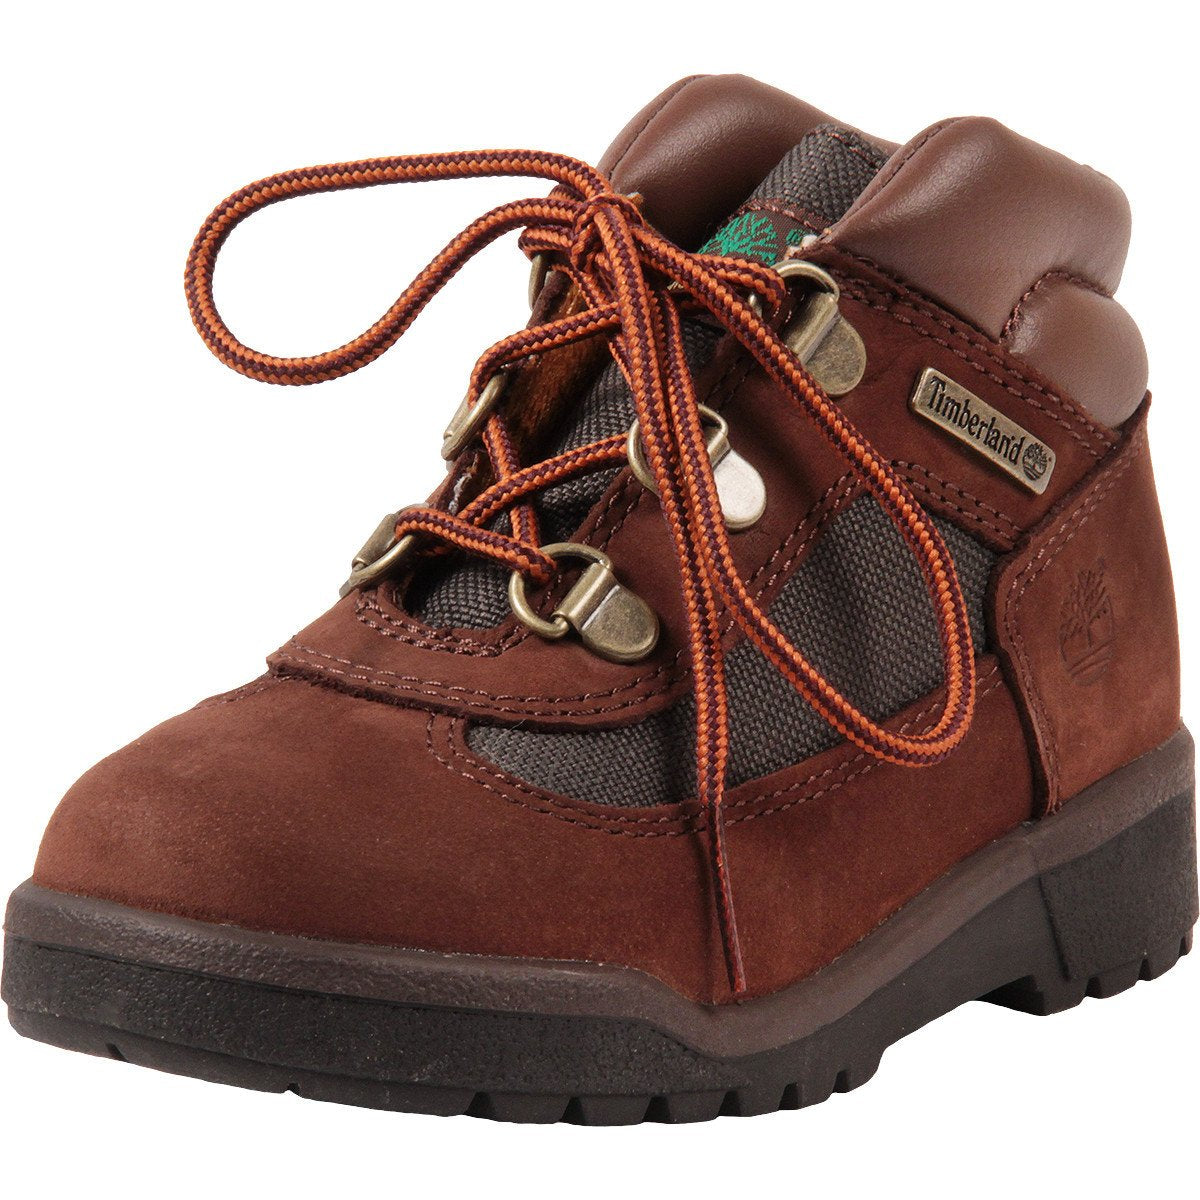 TIMBERLAND Field Boots (Toddler/Pre